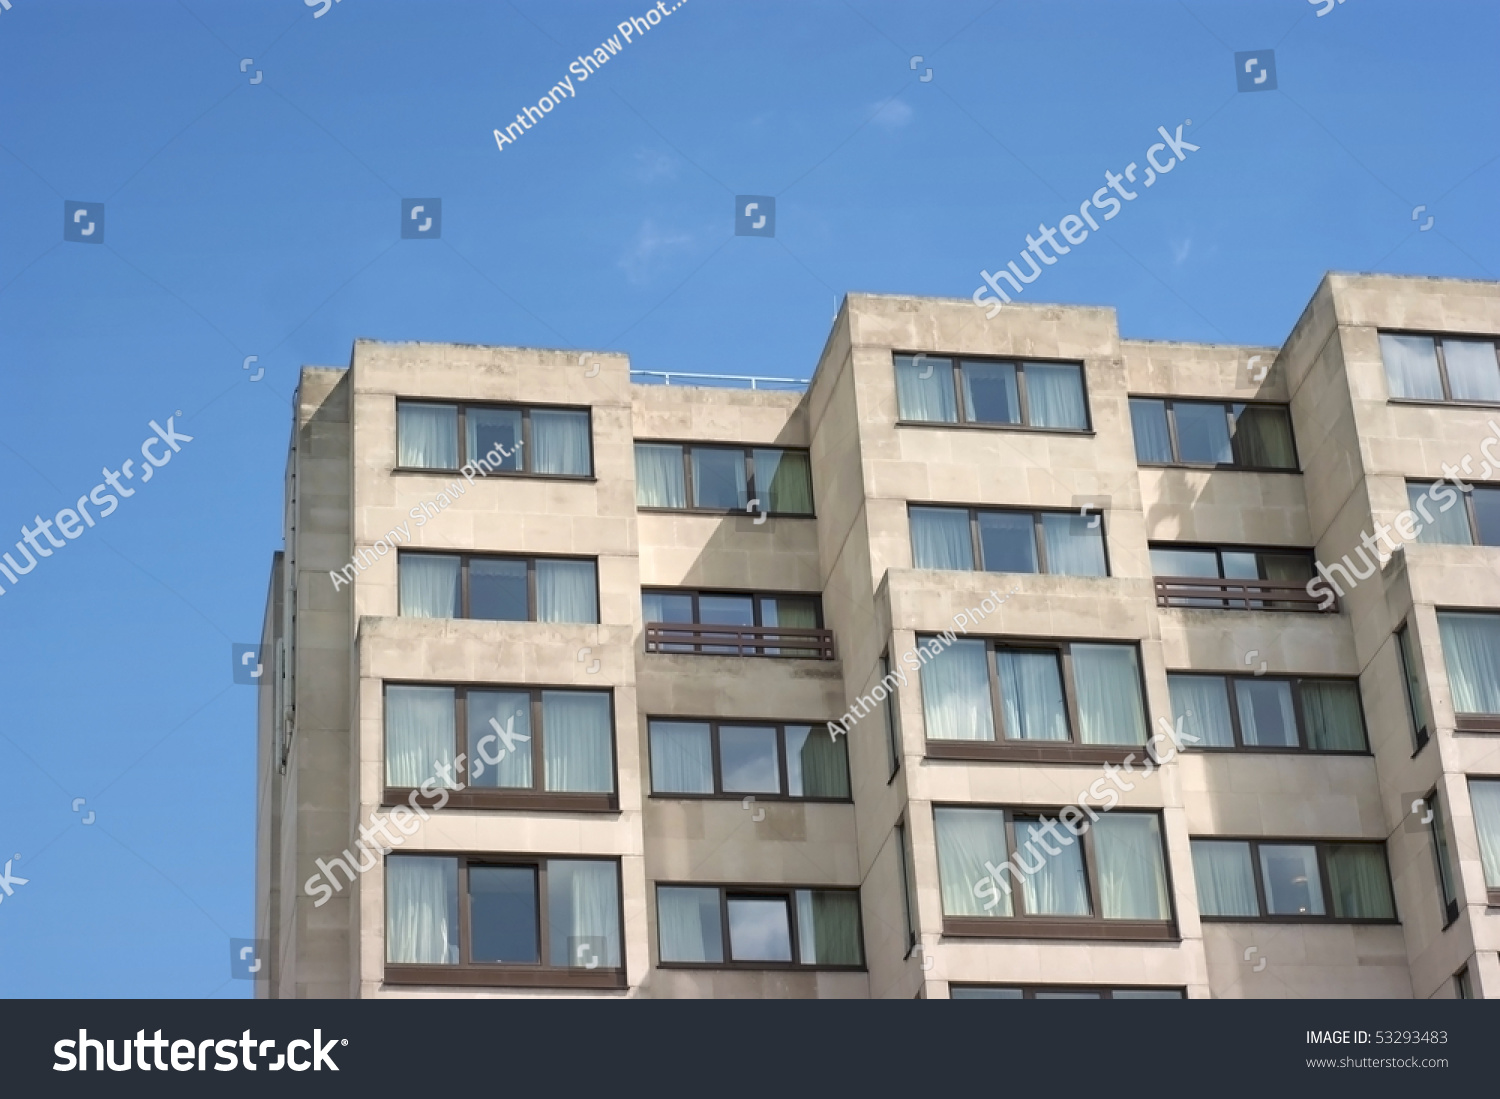 Ugly exterior of apartment hotel in london stock photo for London appart hotel